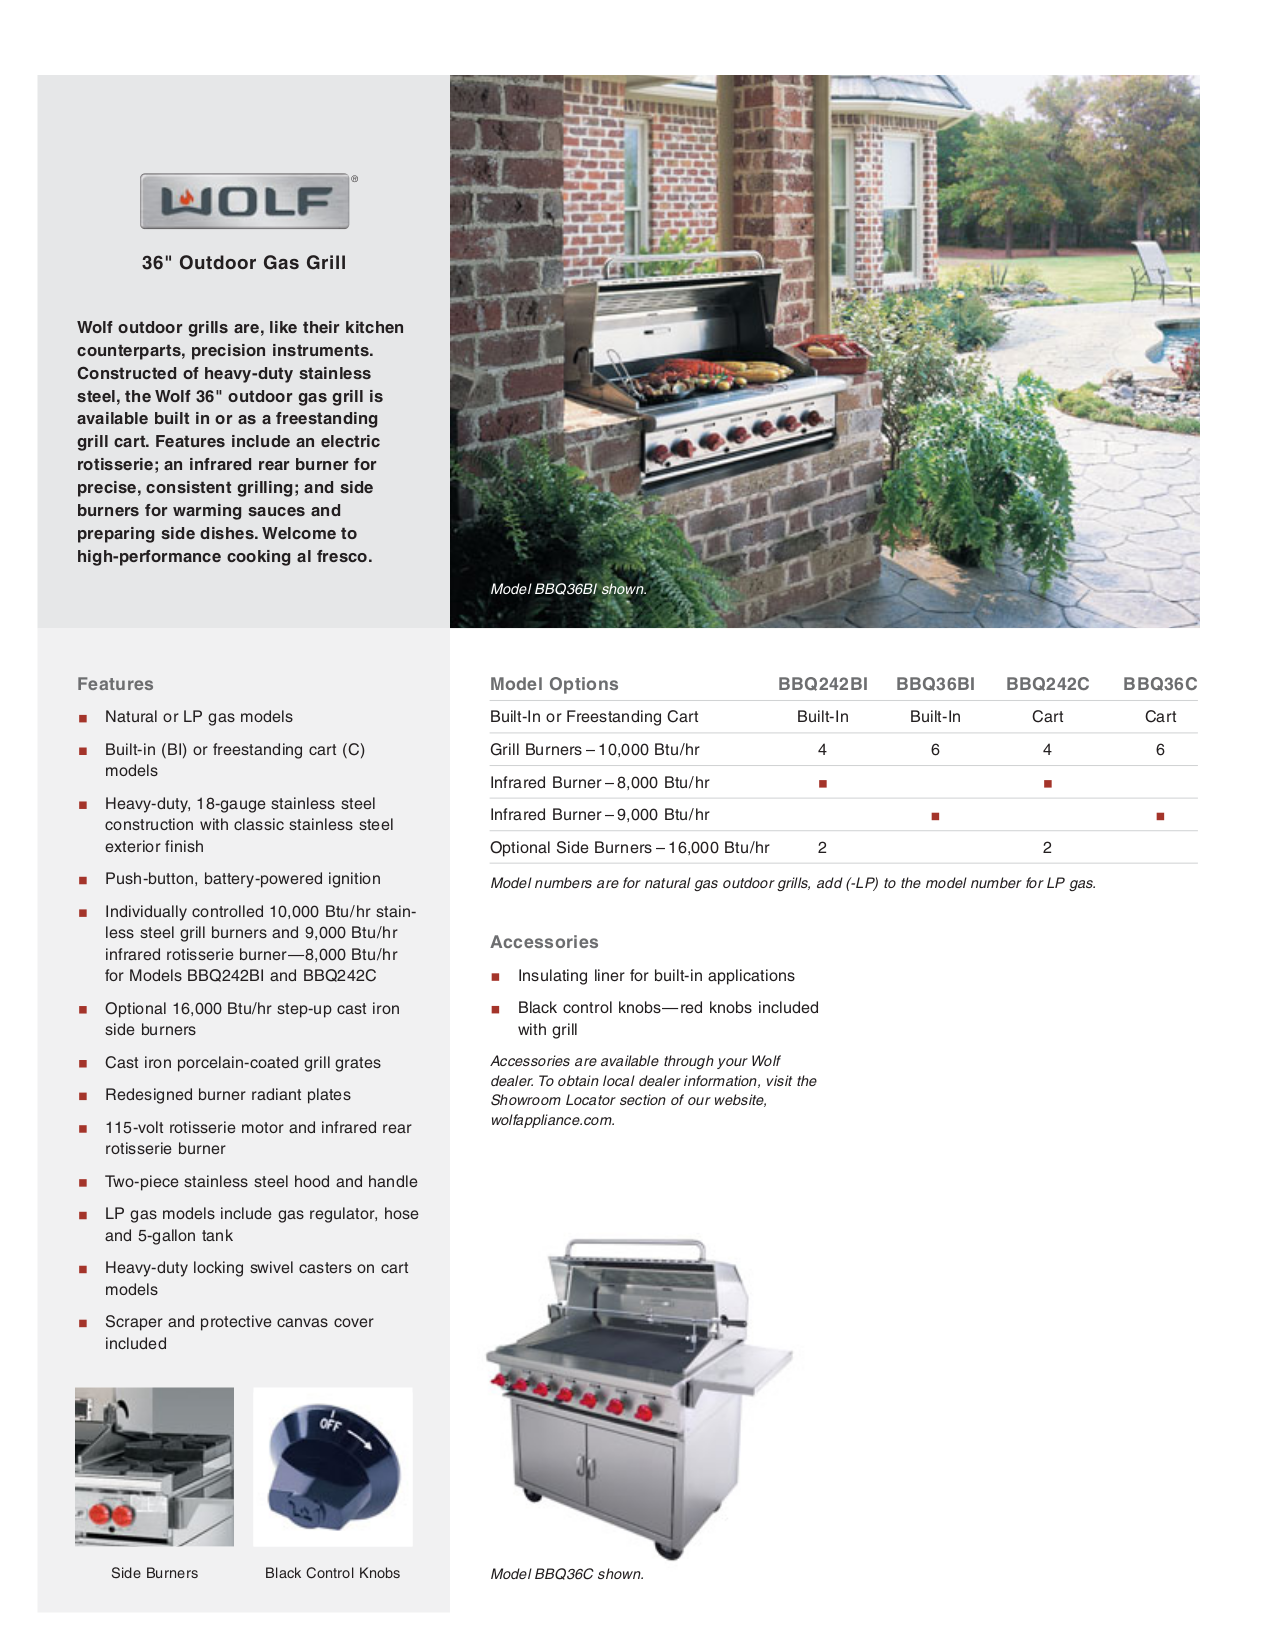 pdf for Wolf Grill BBQ36C manual